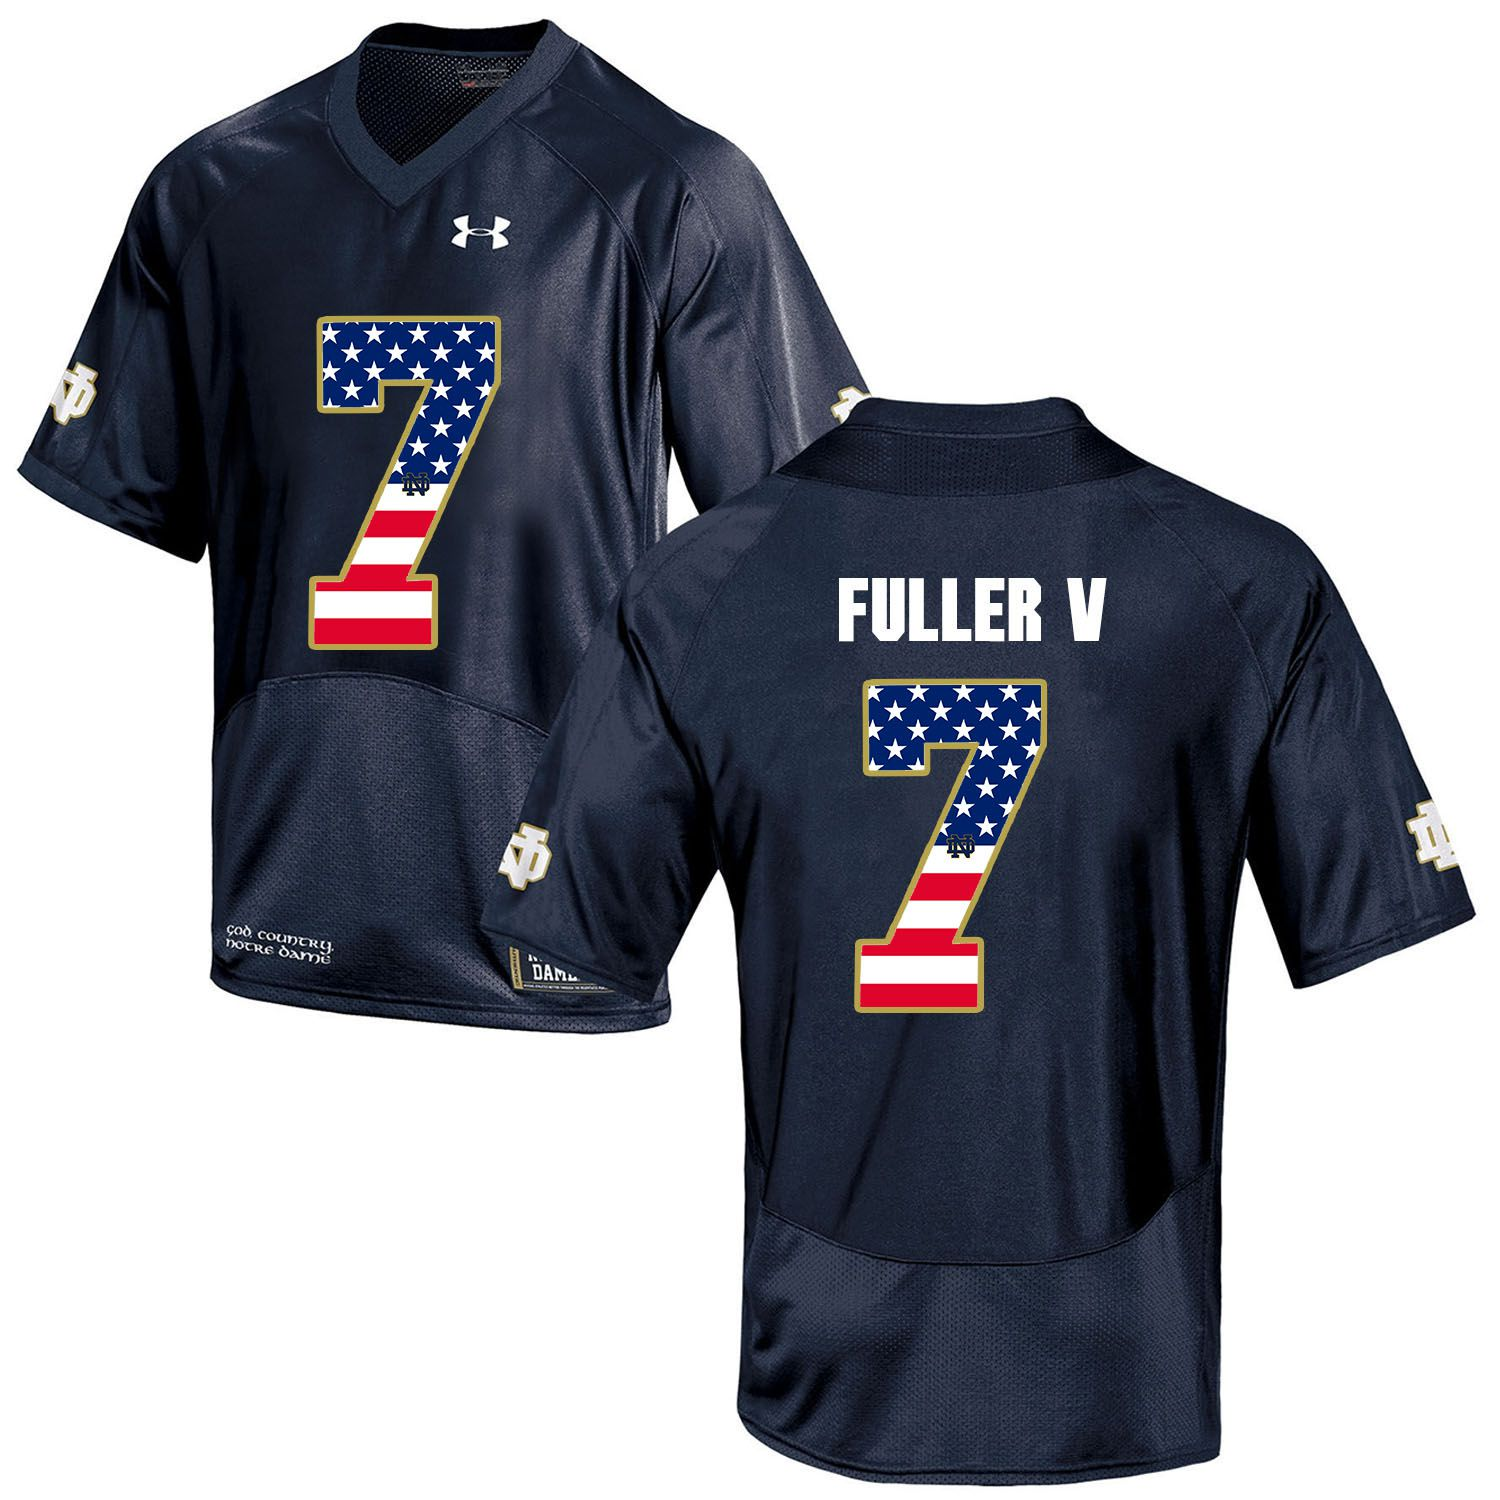 Men Norte Dame Fighting Irish 7 Fuller v Navy Blue Flag Customized NCAA Jerseys